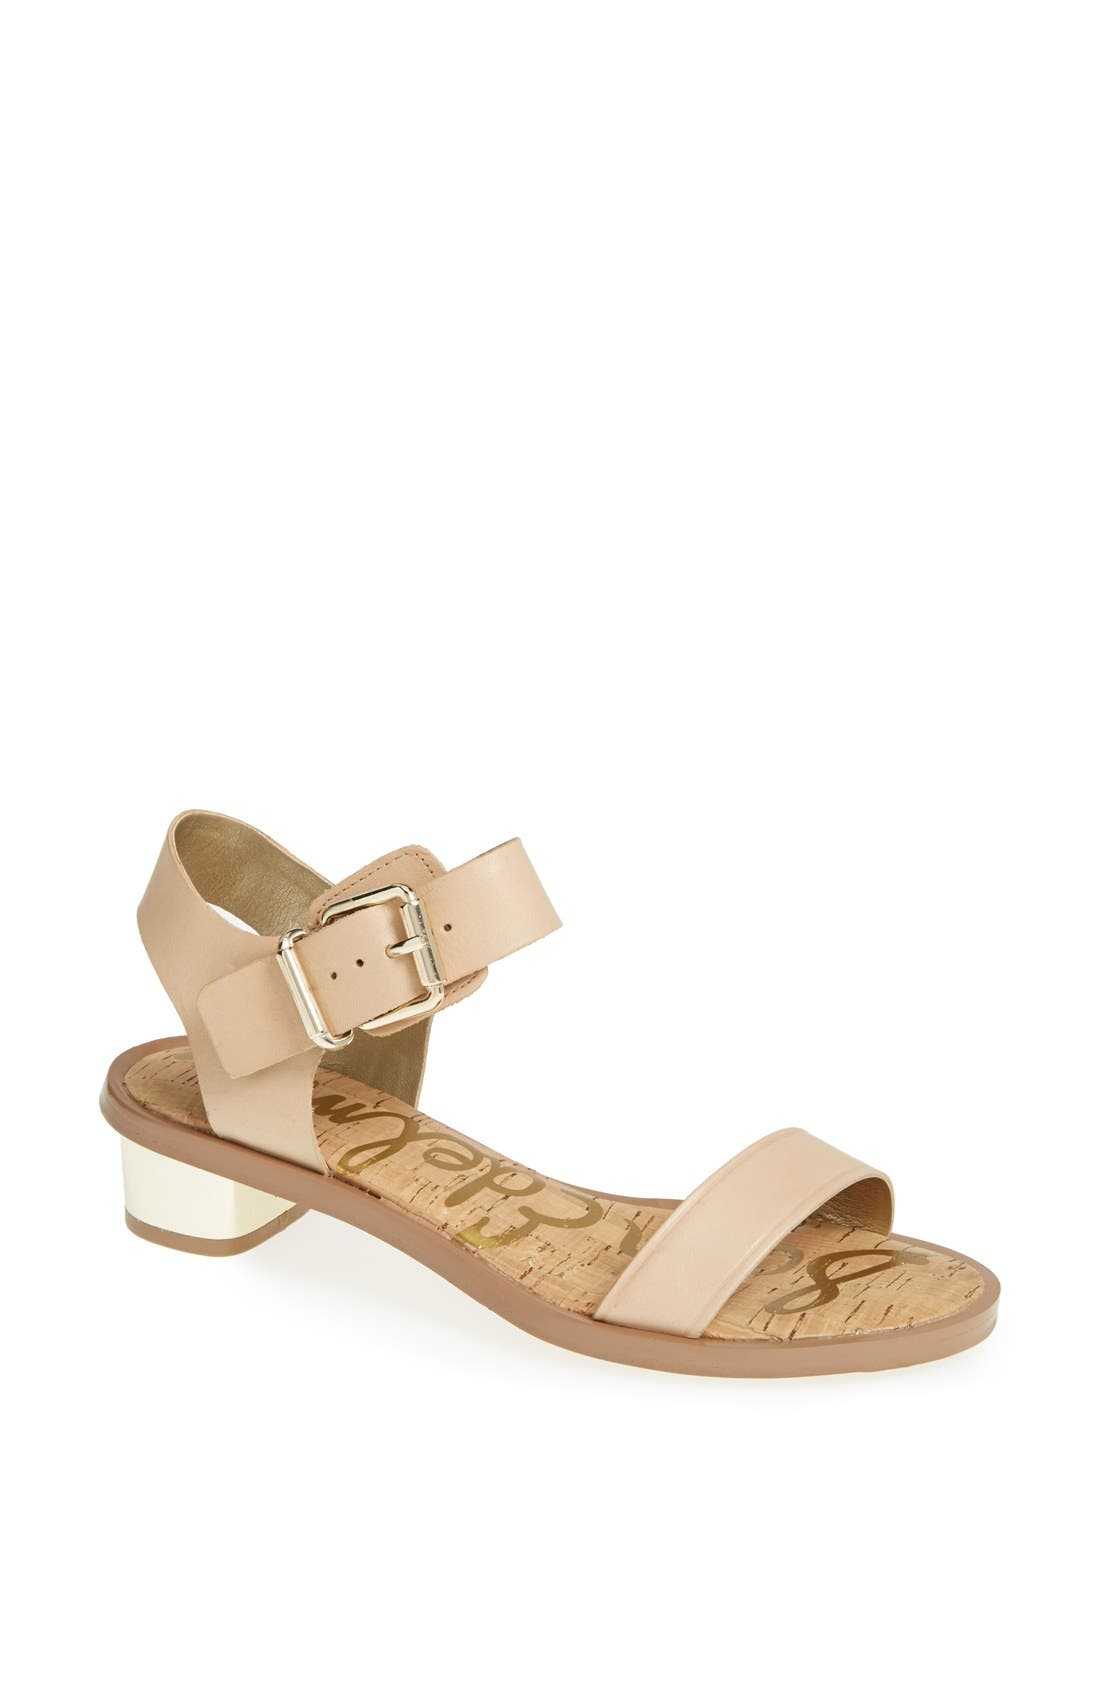 Alternate Image 1 Selected - Sam Edelman 'Trina' Sandal